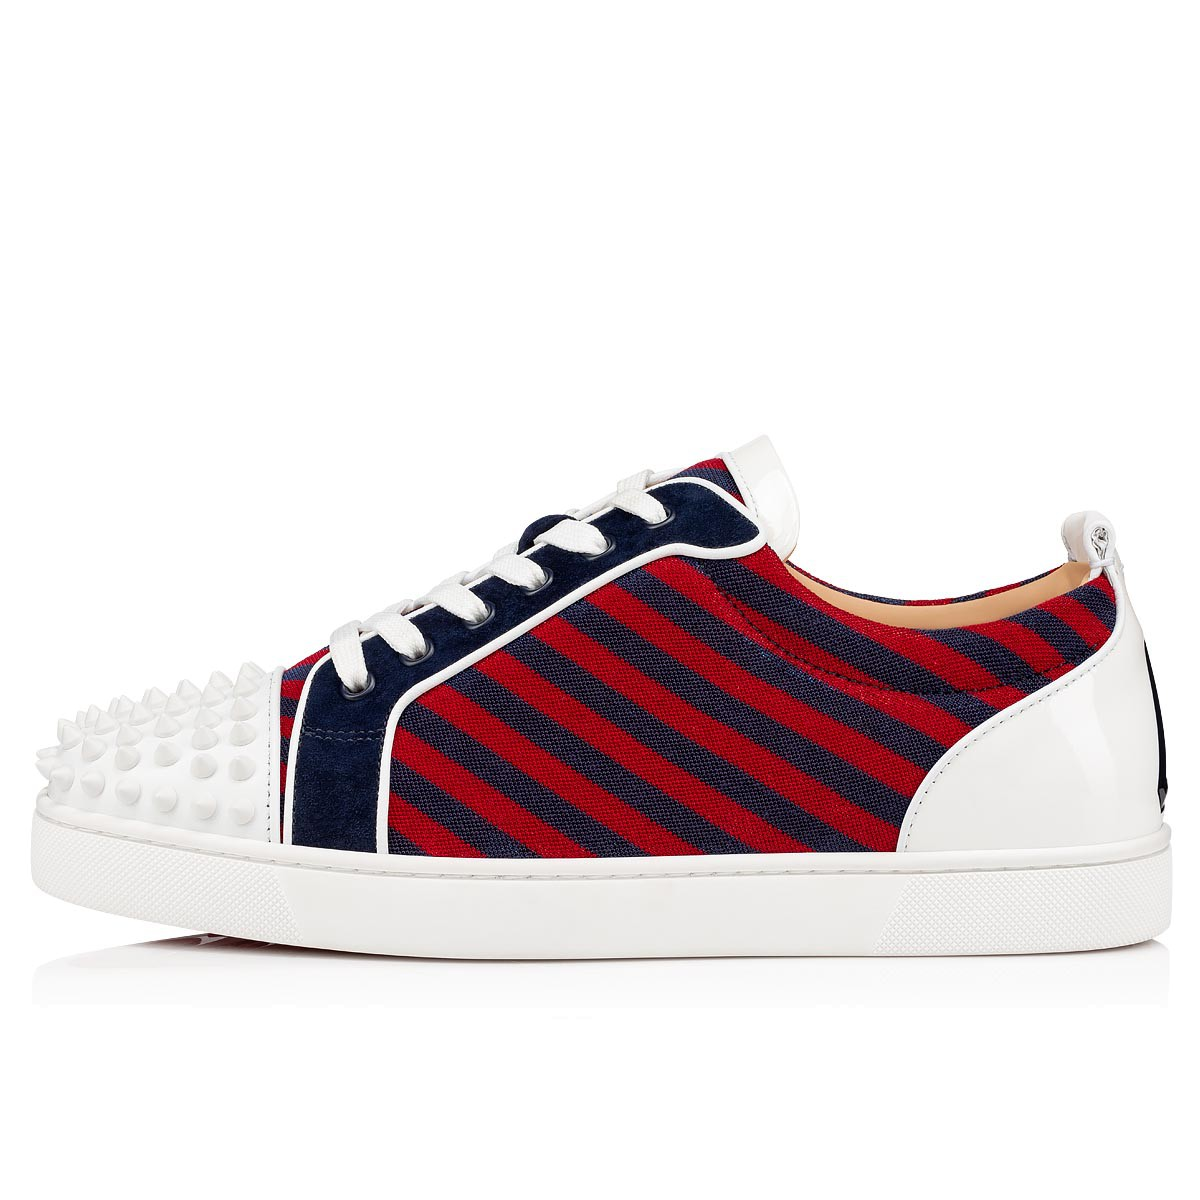 Shoes - Varsijunior Spikes 2019 Flat - Christian Louboutin